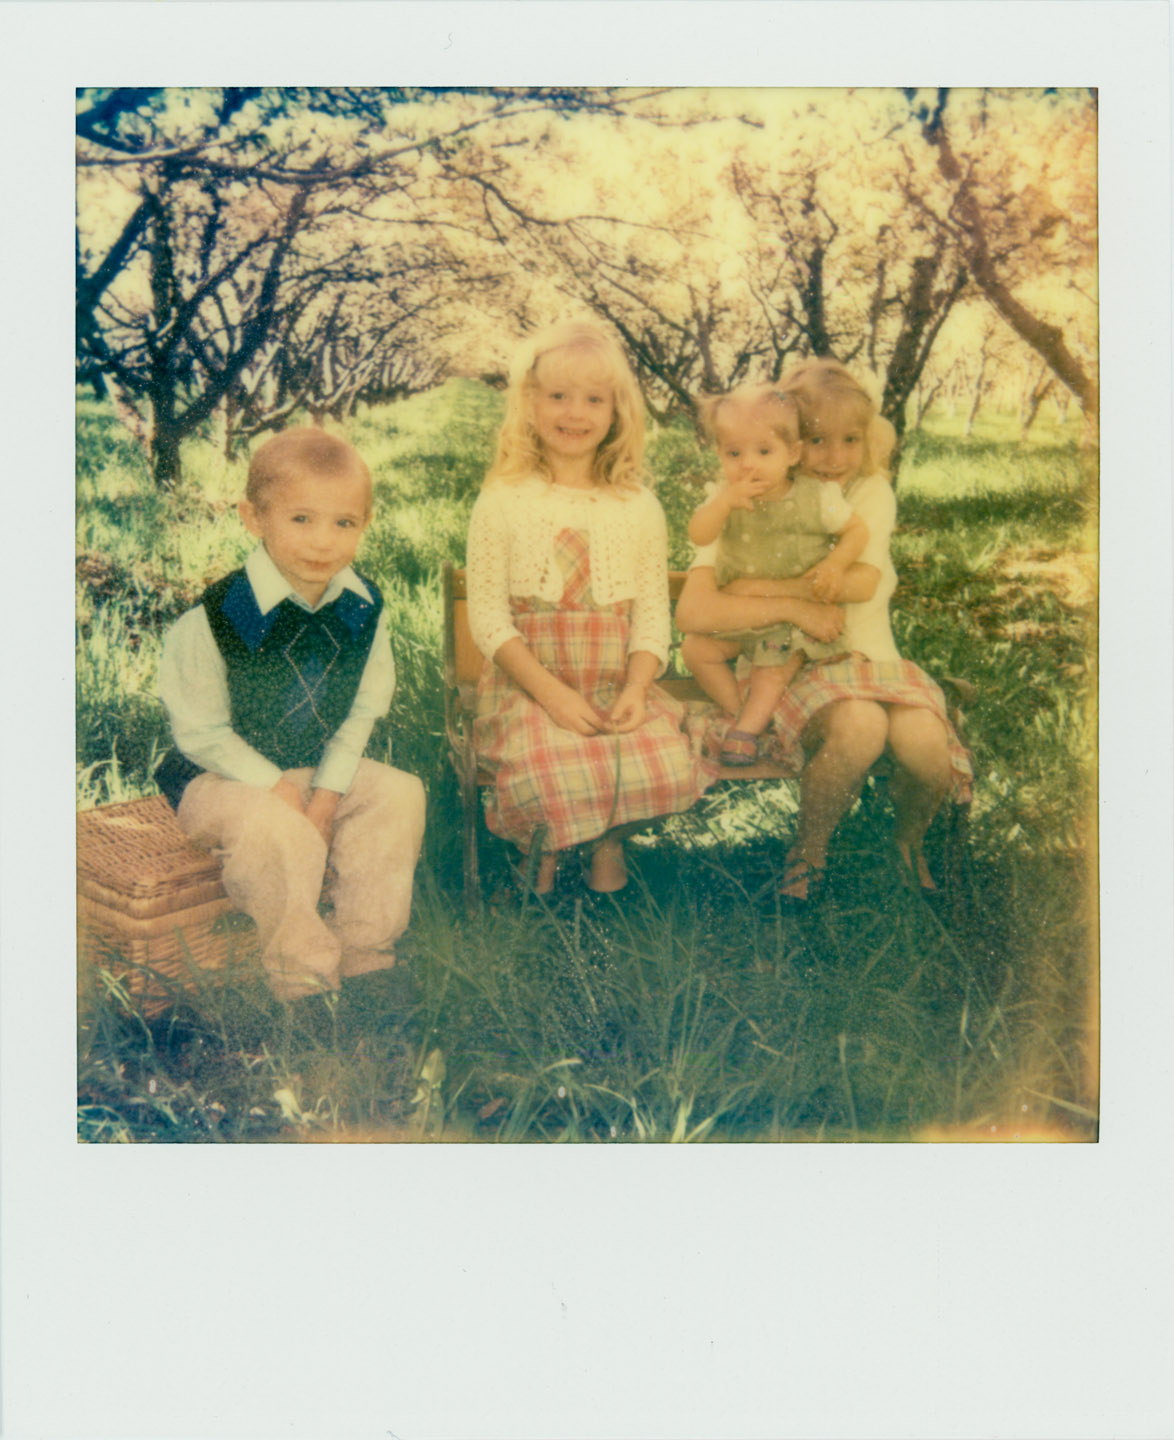 polaroid photograph of children in an orchard